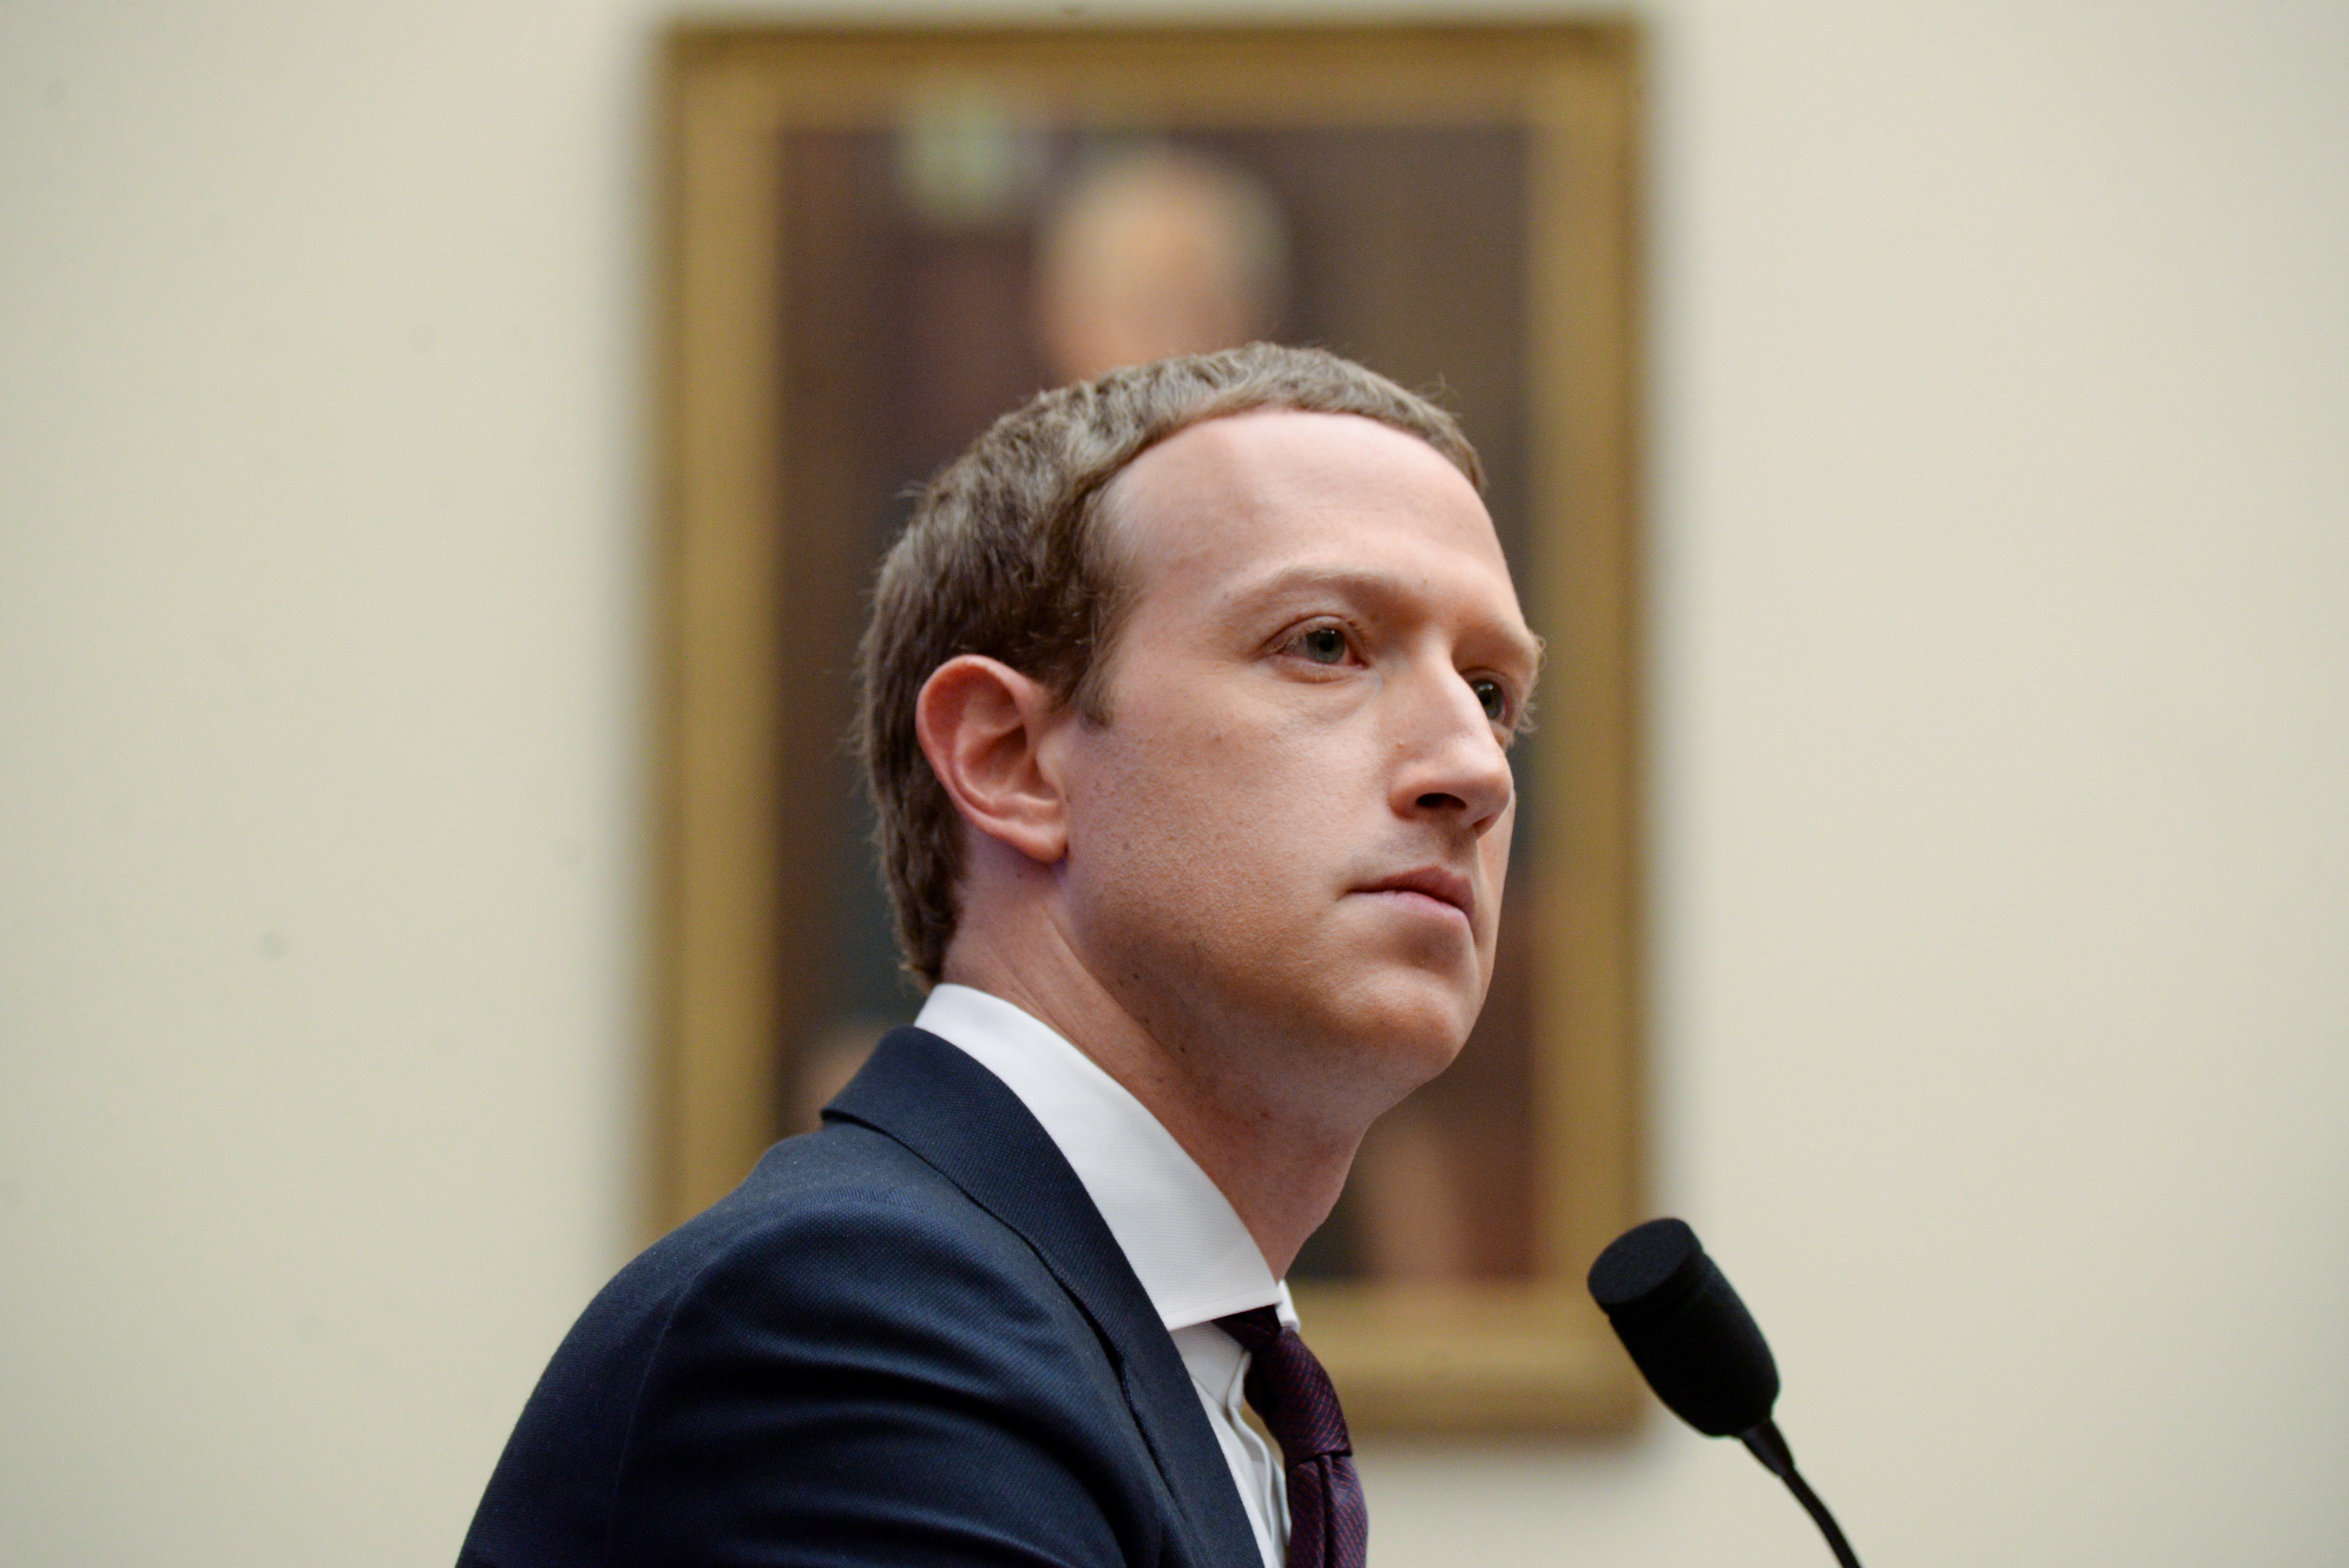 Shareholders claim Facebook overpaid an FTC settlement to protect Zuckerberg